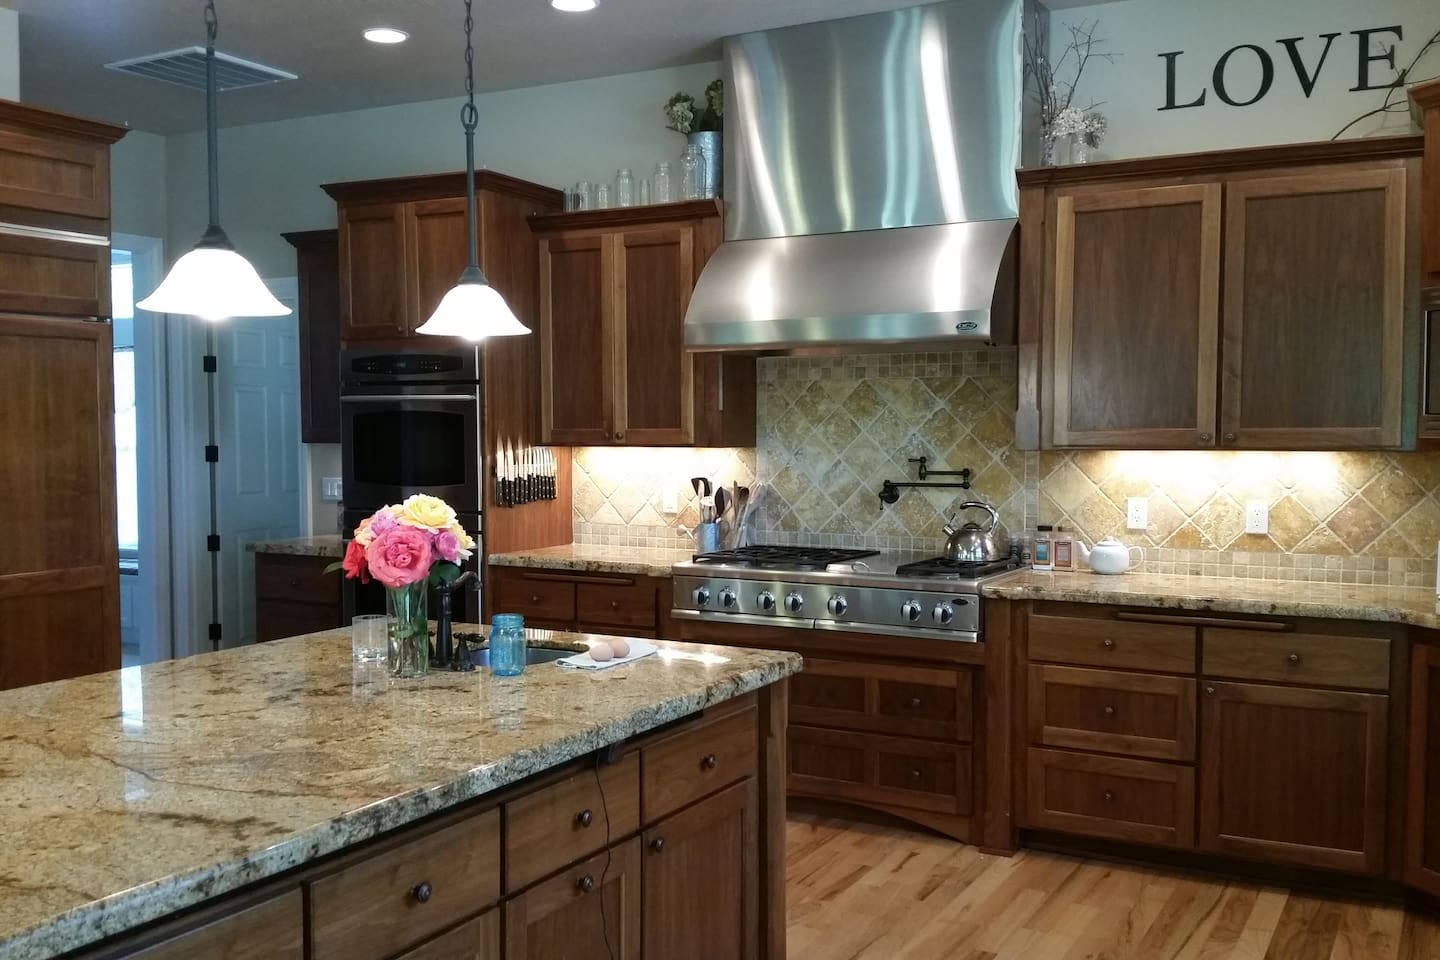 Gourmet kitchen with double oven, 6 burner gas stove w/ grill, 4 dishwasher drawers, and warming drawer